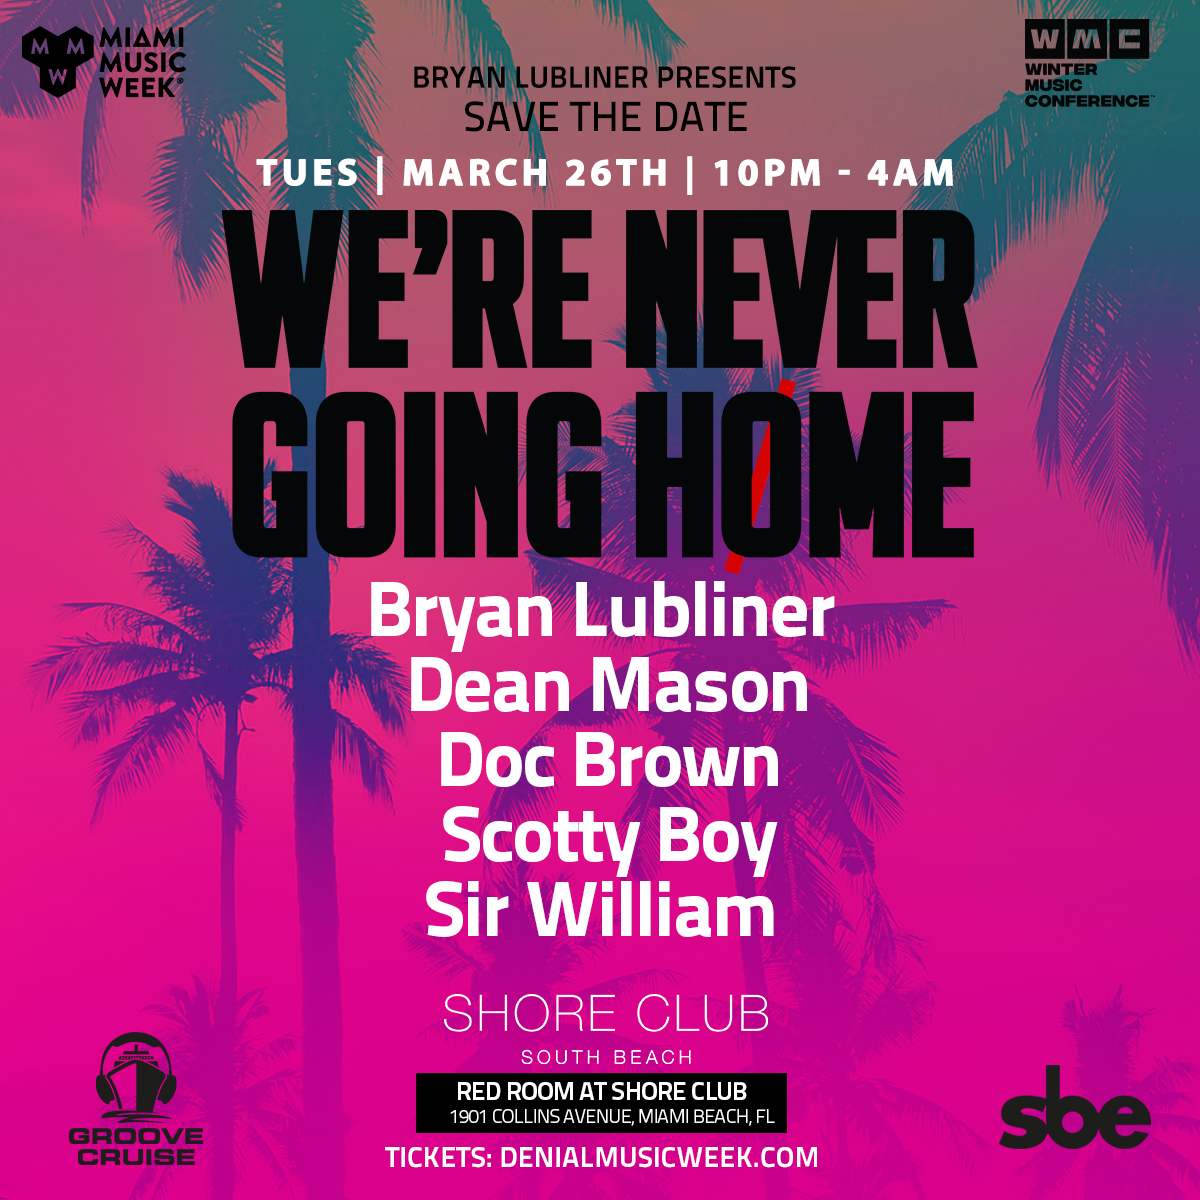 We're Never Going Home Flyer